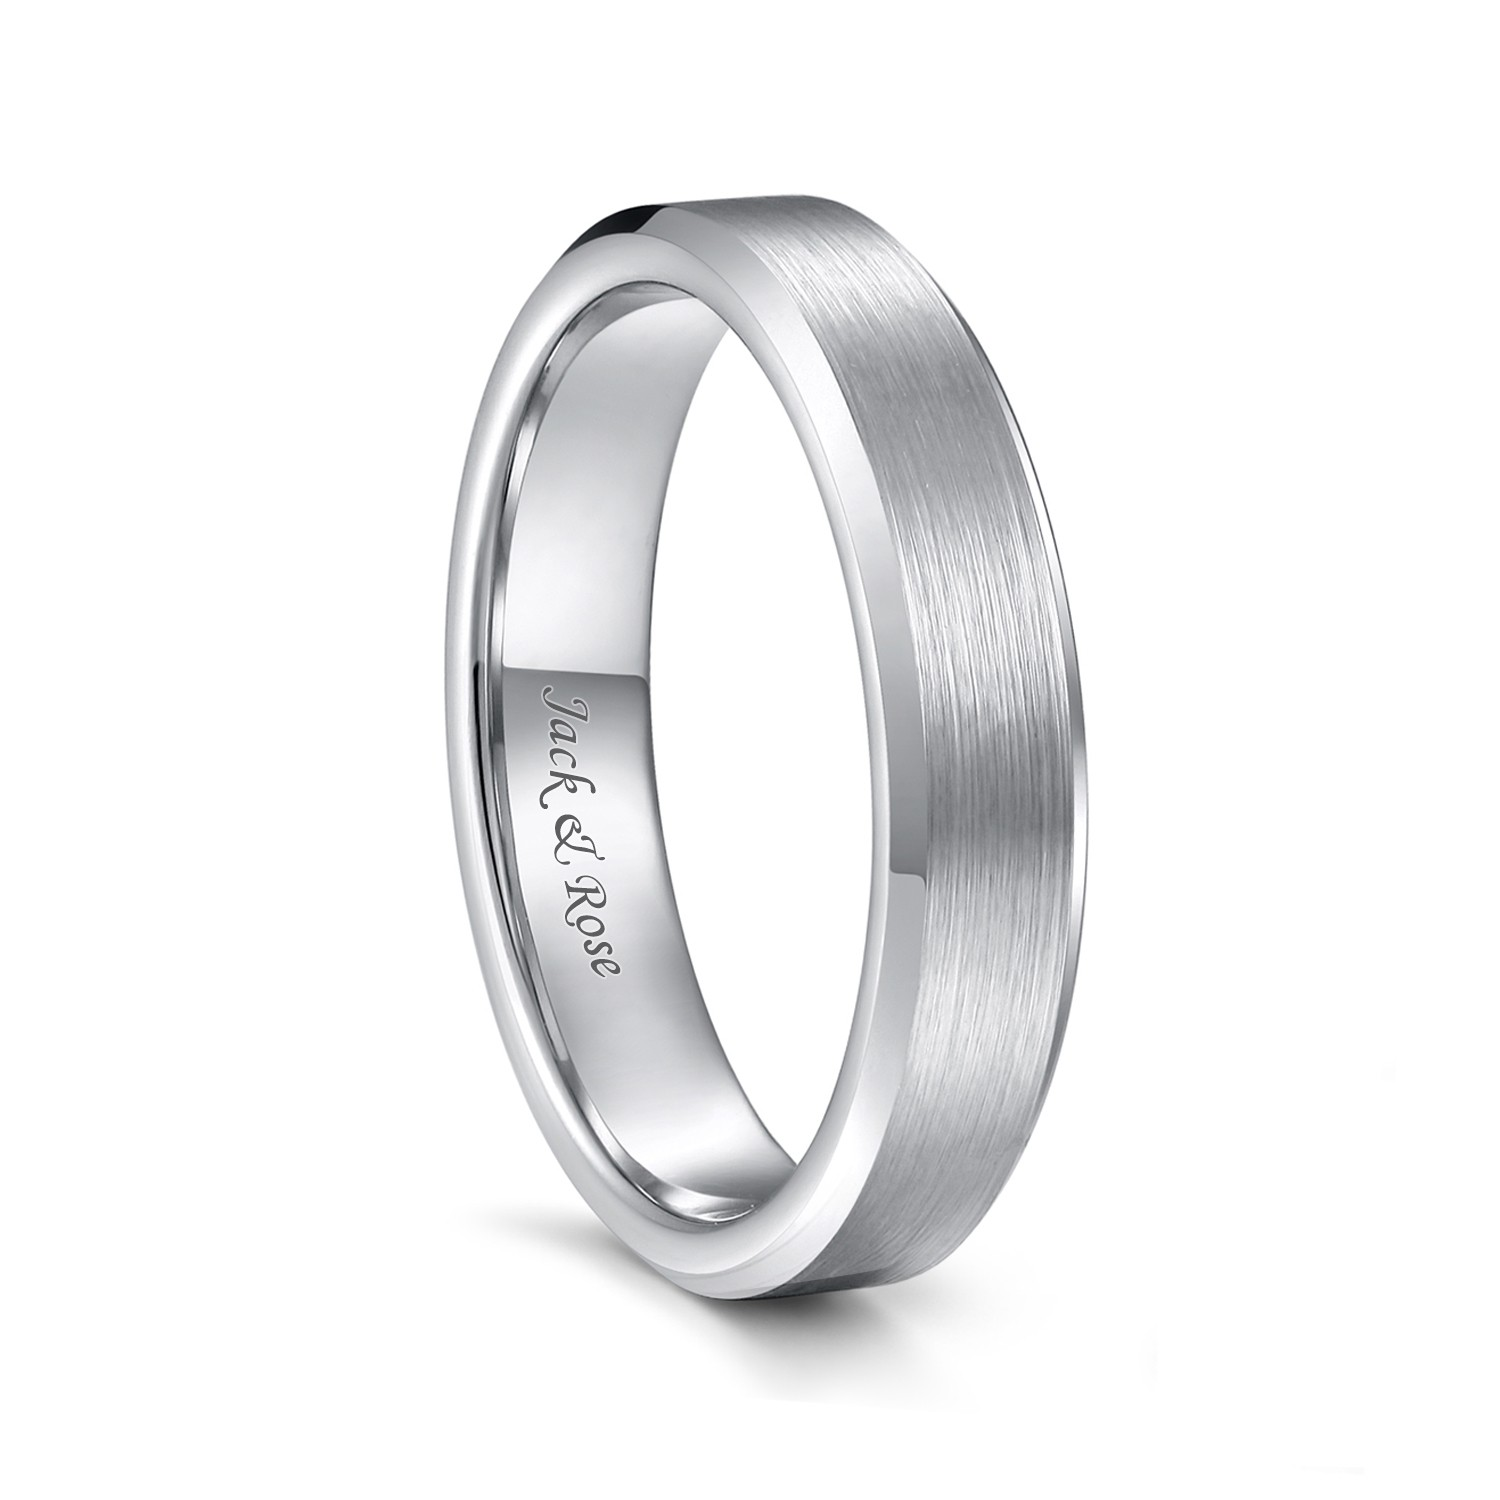 Silver Tungsten Wedding Bands For Men Women Brushed Center And Beveled Edge 4mm